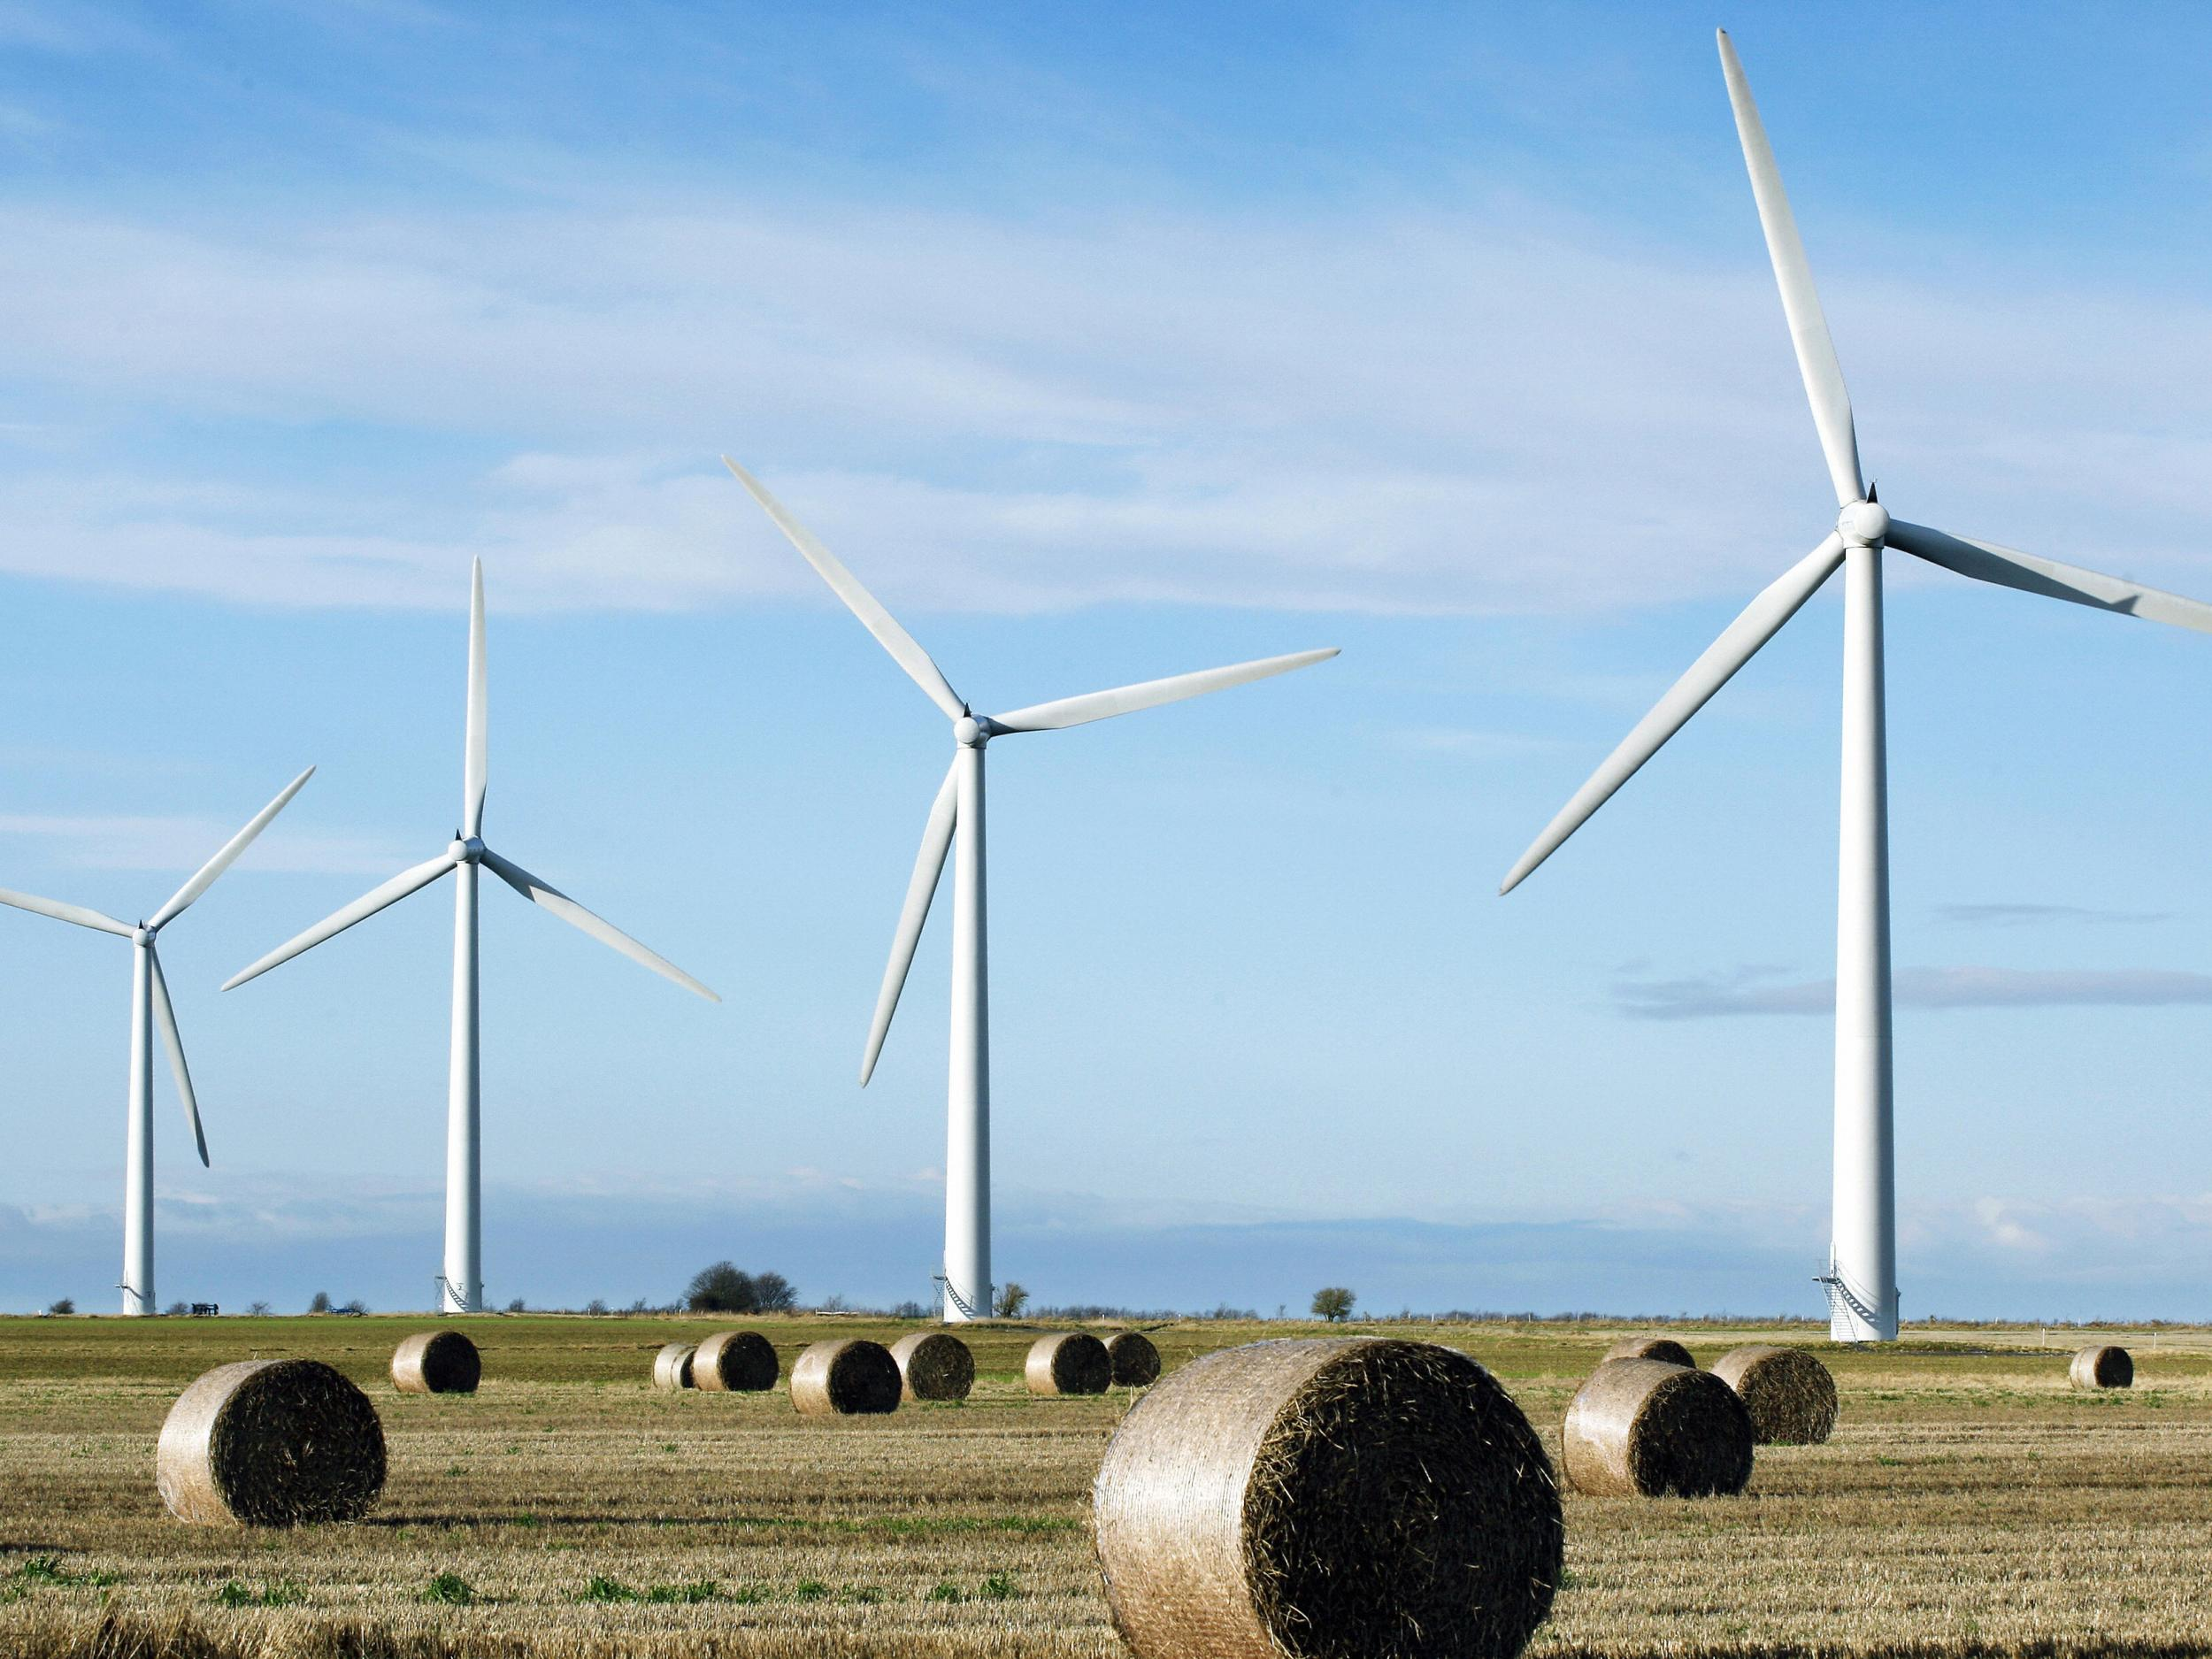 Nearly three quarters of people across their constituencies supported onshore wind and nearly the same proportion said they would be happy to live within five miles of turbines.